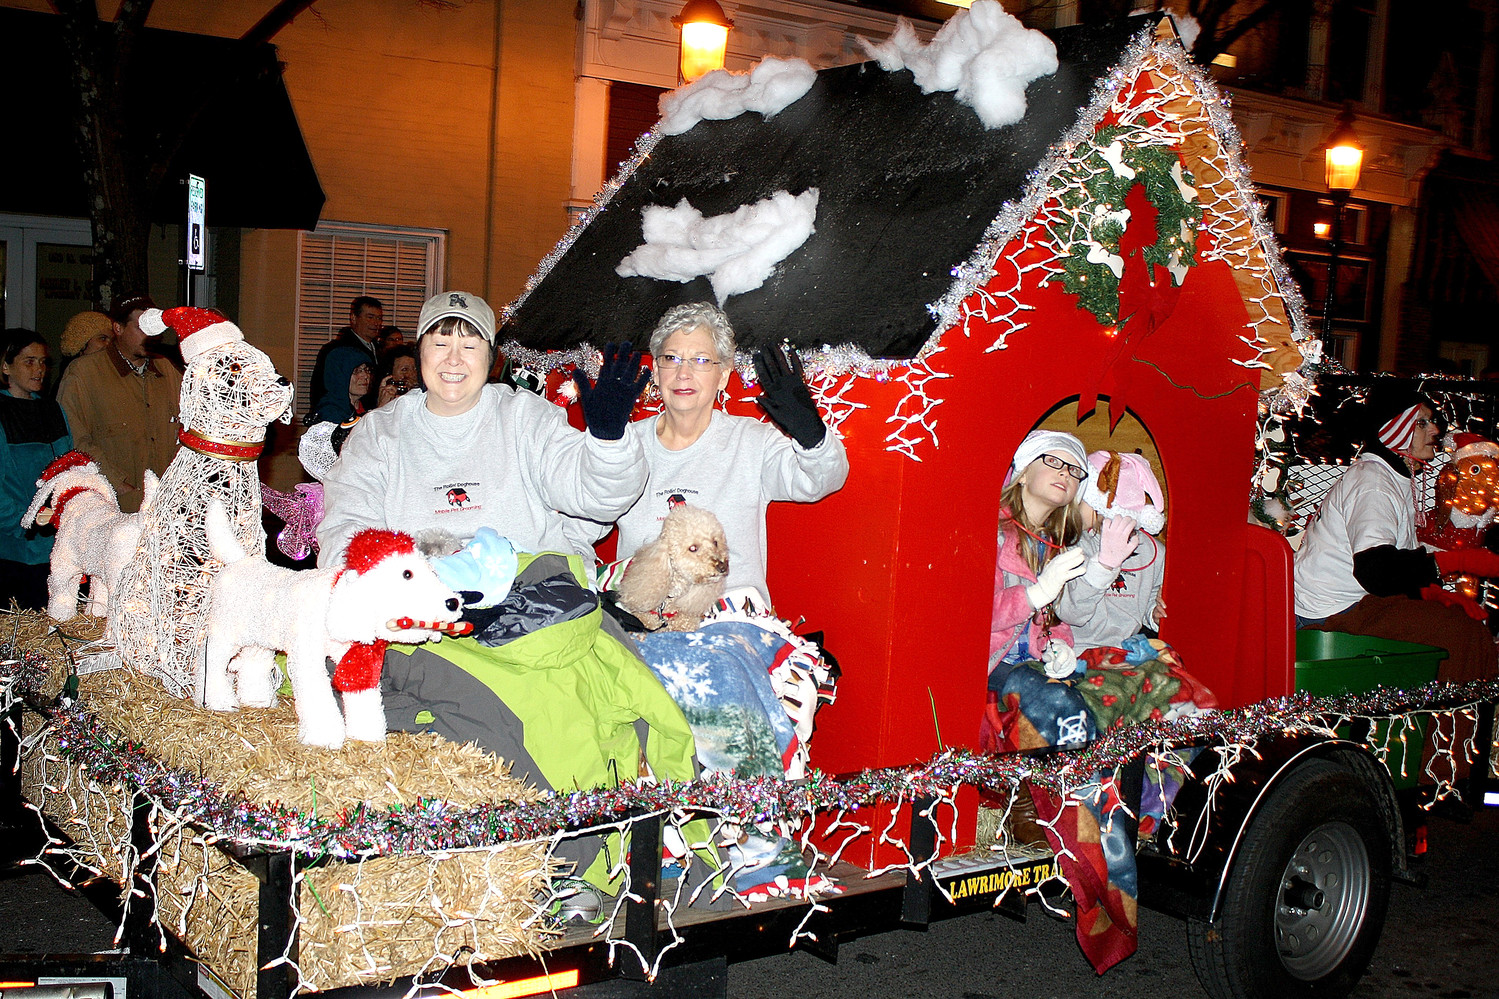 CHILDREN AND ADULTS all enjoy being parts of the MainStreet Cleveland Christmas parade, schedule this year for Saturday, Dec. 2.